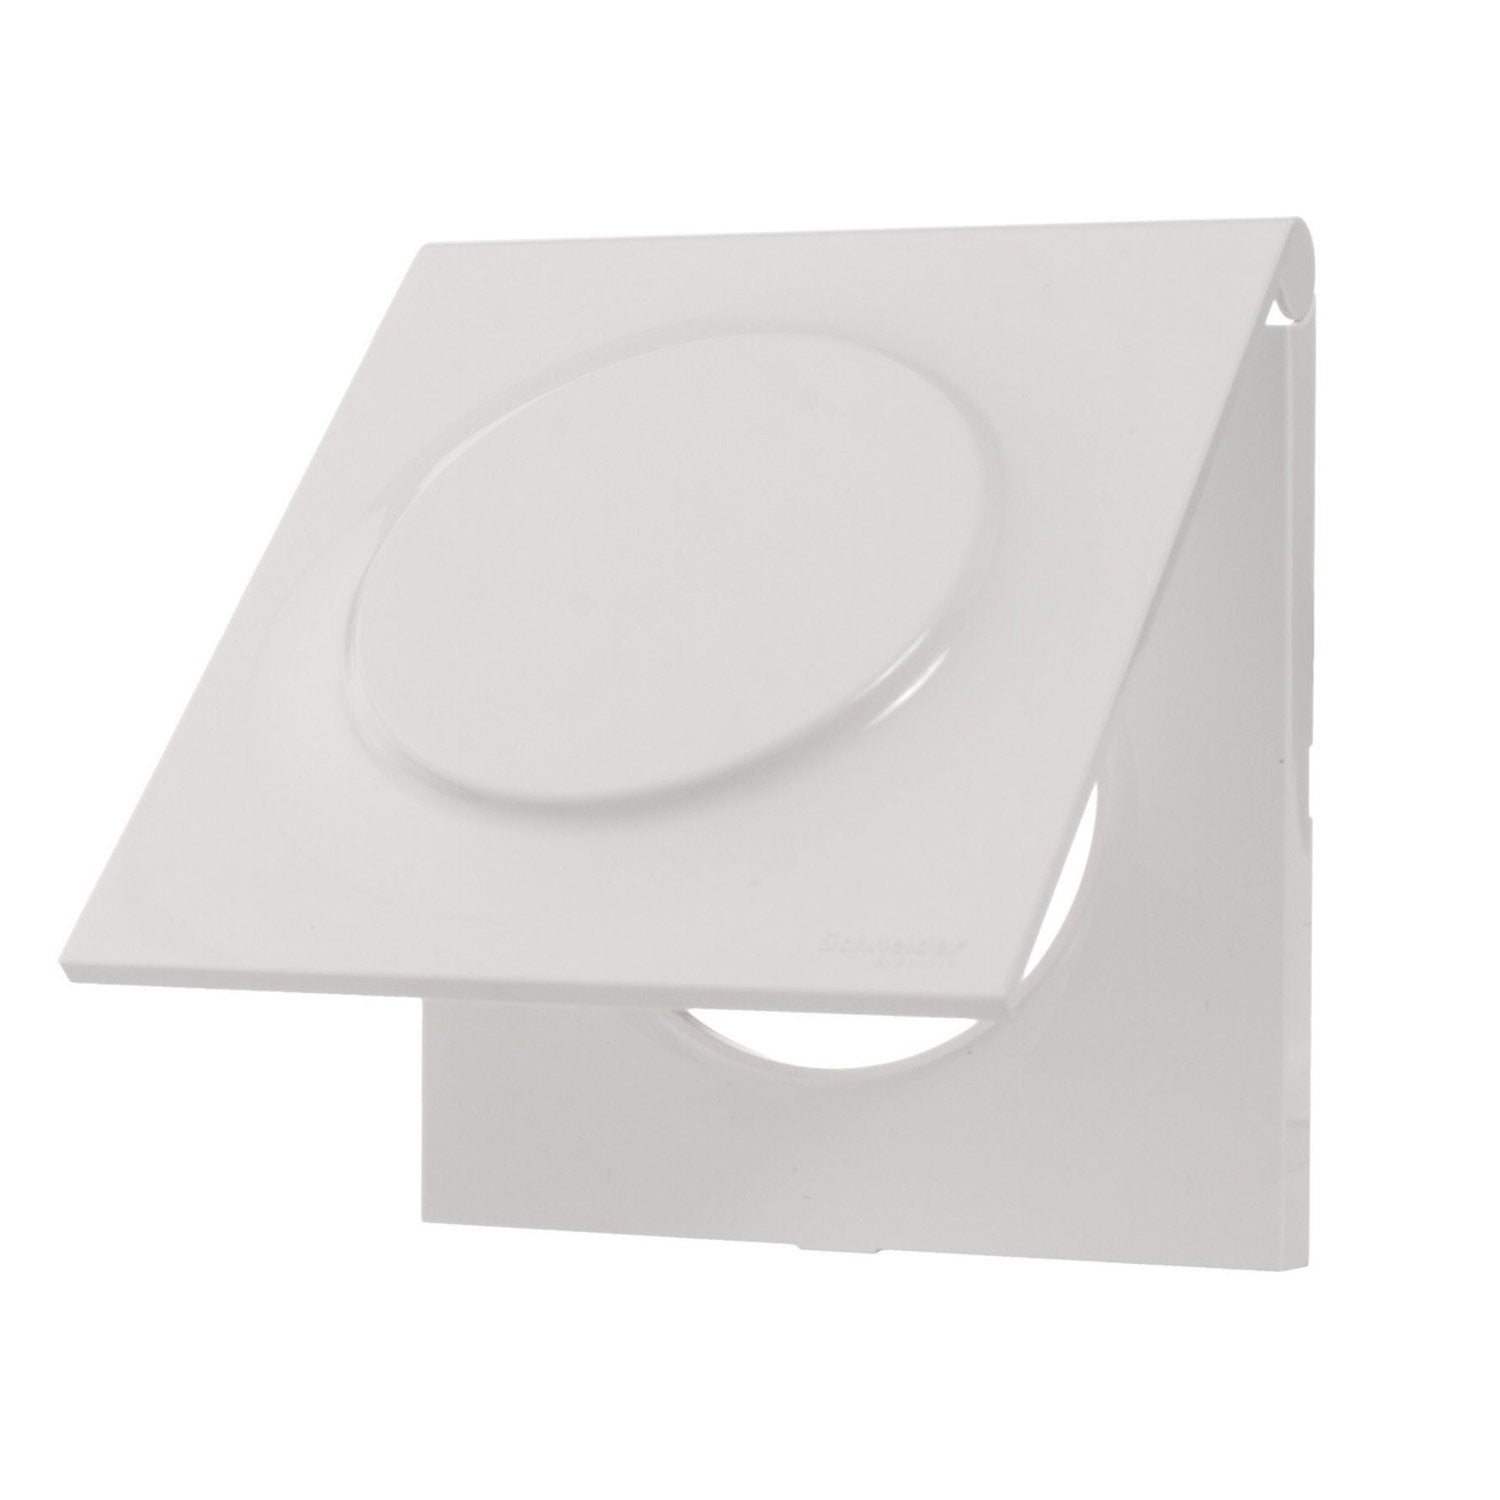 Plaque simple odace schneider electric blanc brillant for Plaque melamine leroy merlin